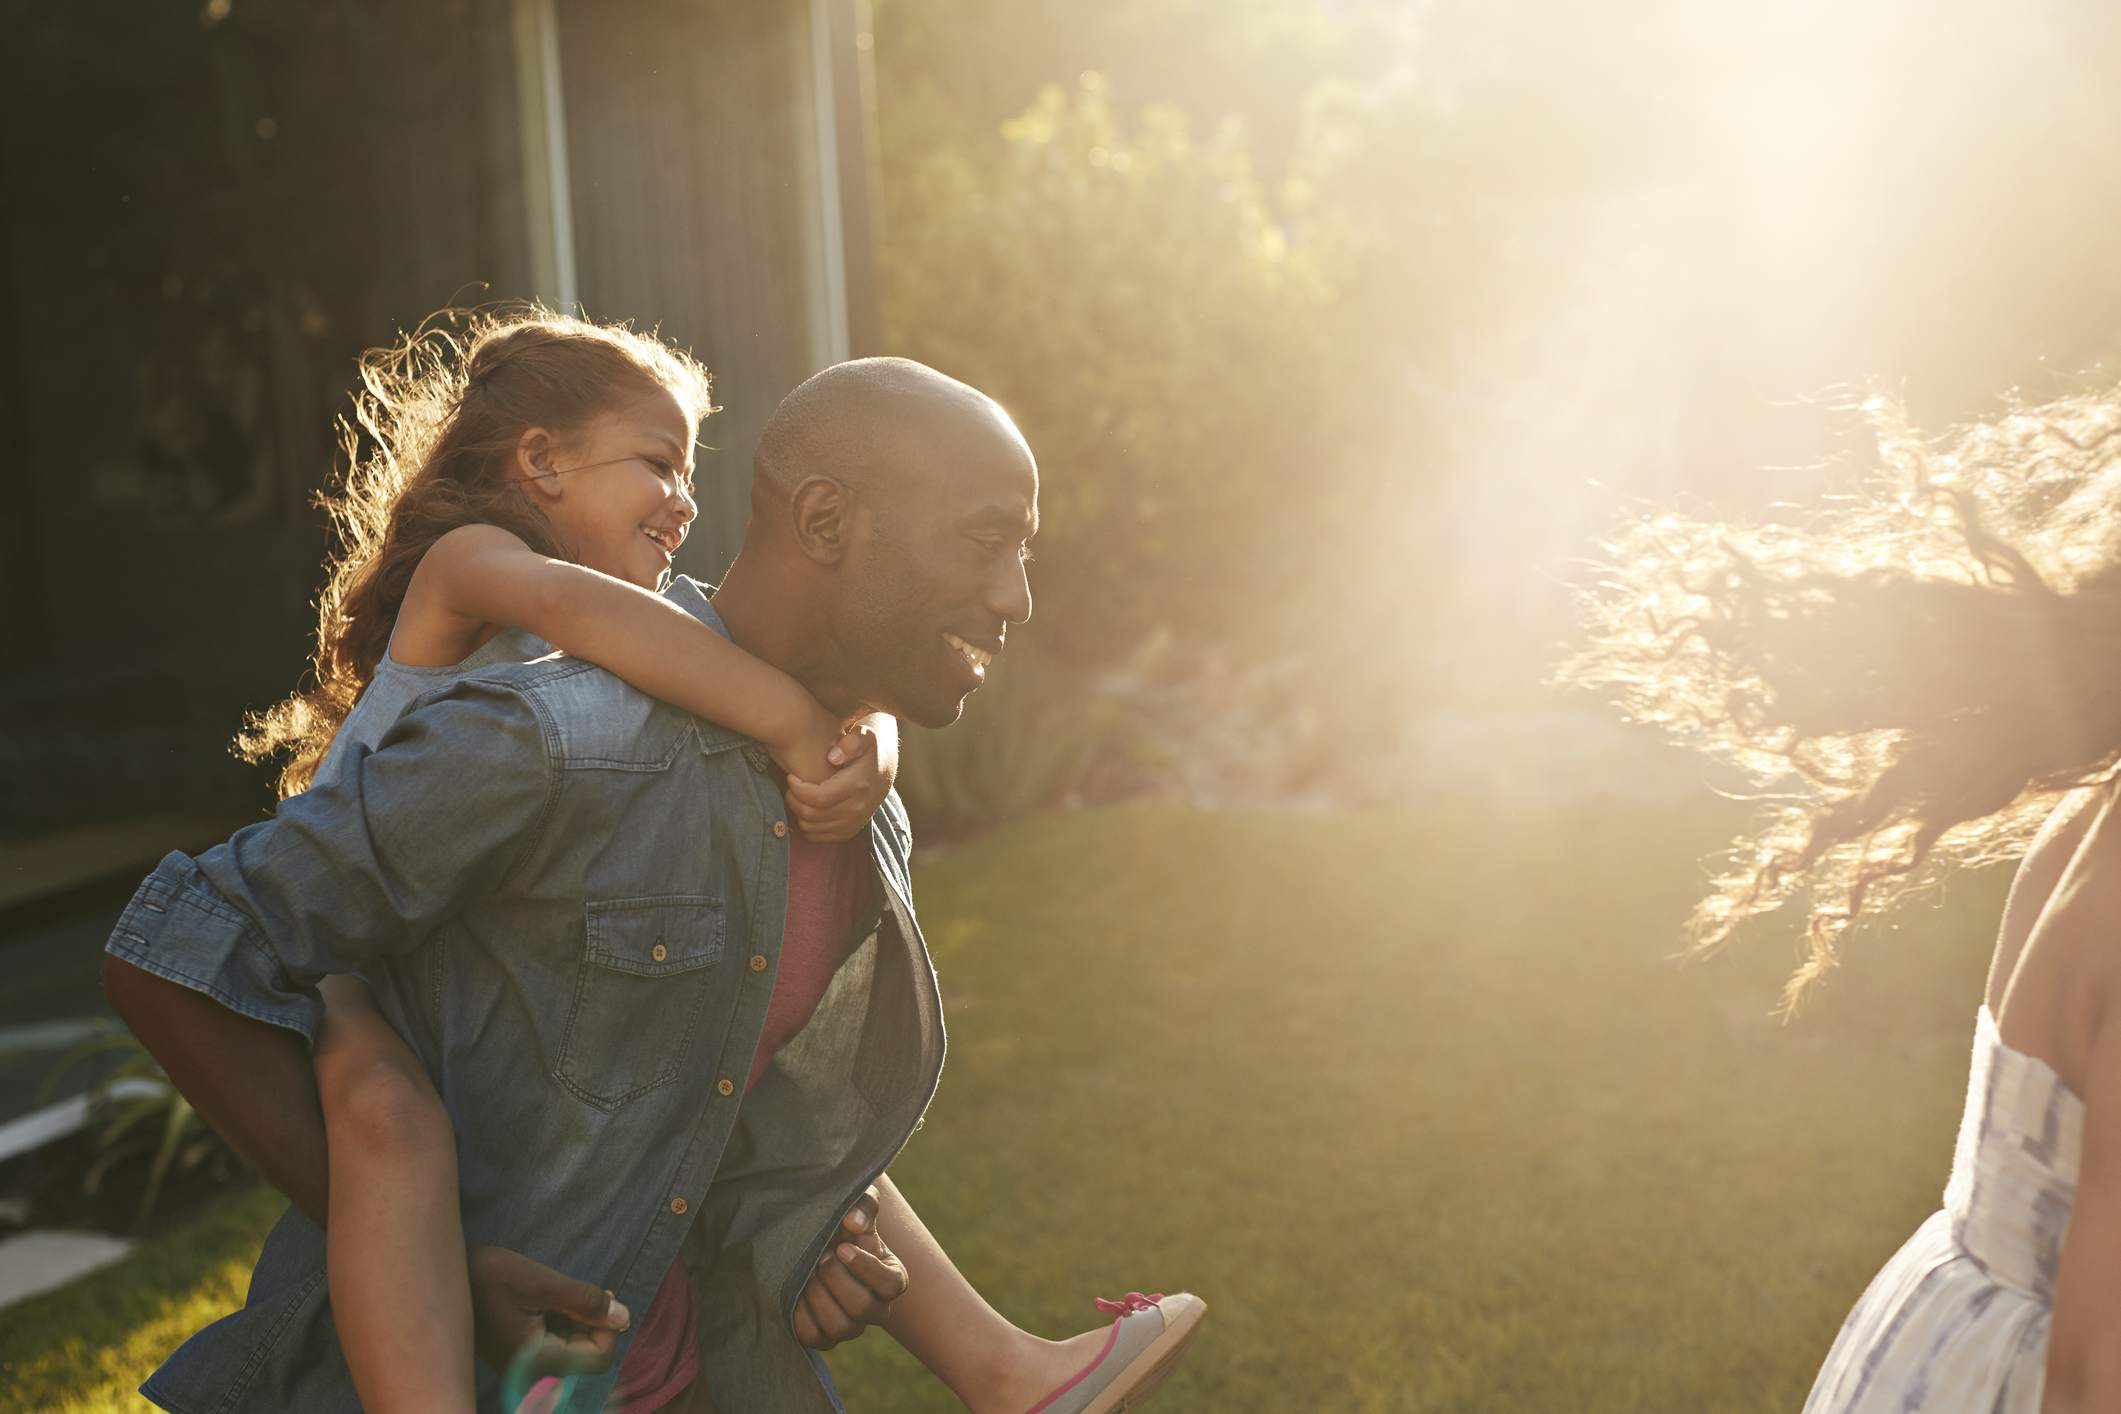 Father giving piggyback ride to daughter outdoors